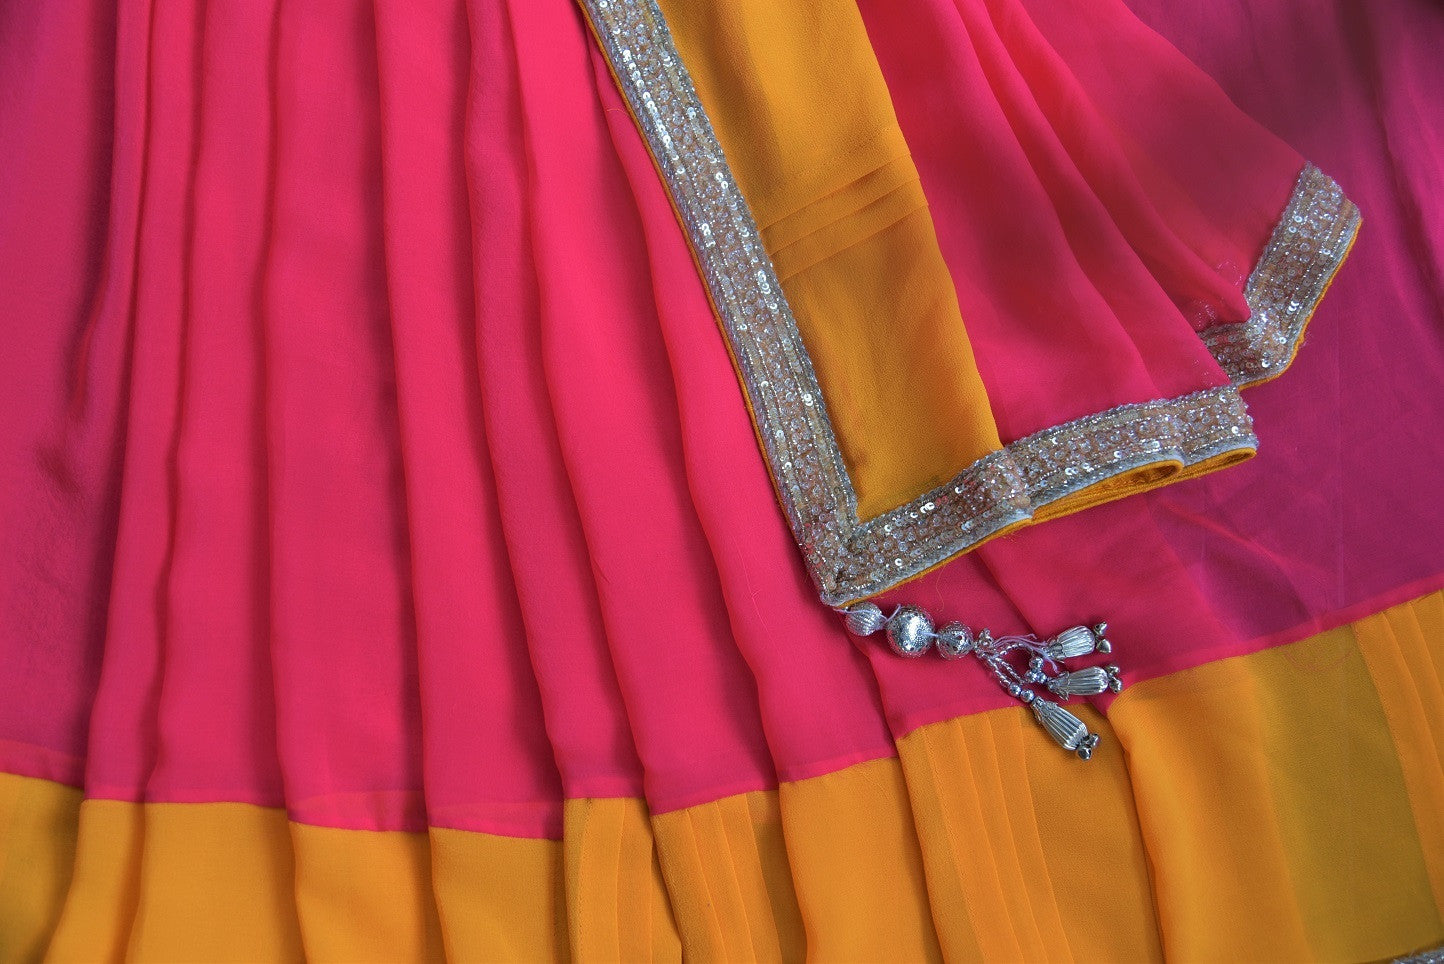 90B933 Pink & yellow sari with a metallic border. Buy this georgette party wear sari online at our Indian clothing store in USA & add it to your ethnic wear collection. The plain saree is wonderfully versatile and a faultless pick for many occasions like pujas and festivals.